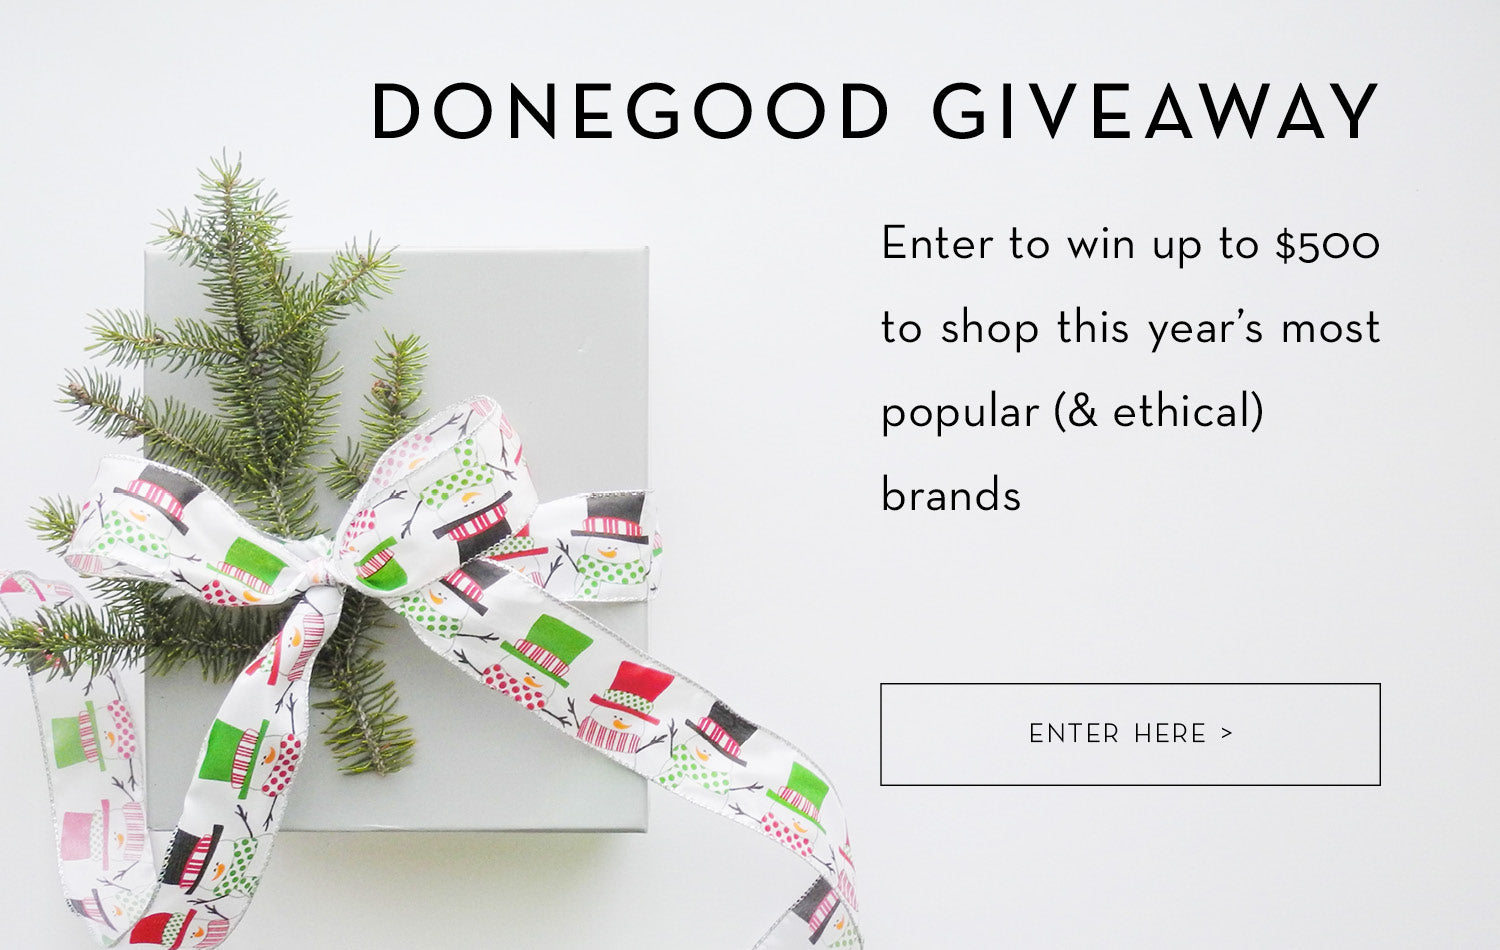 Enter to win the DoneGood Giveaway